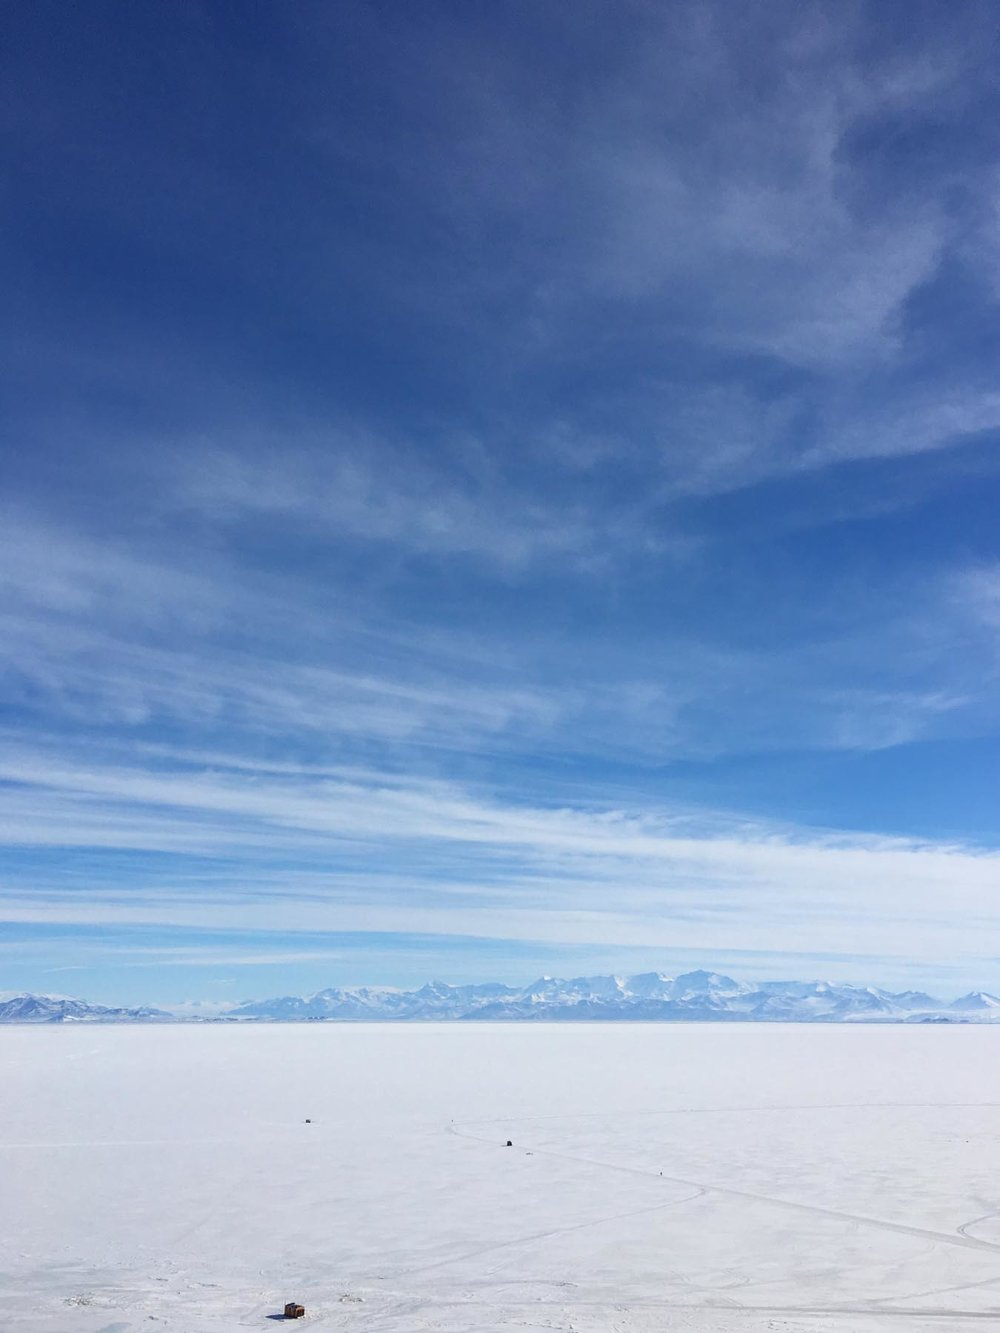 looking out from McMurdo across the sea ice to the Transantarctic Mountains, Nov 2016